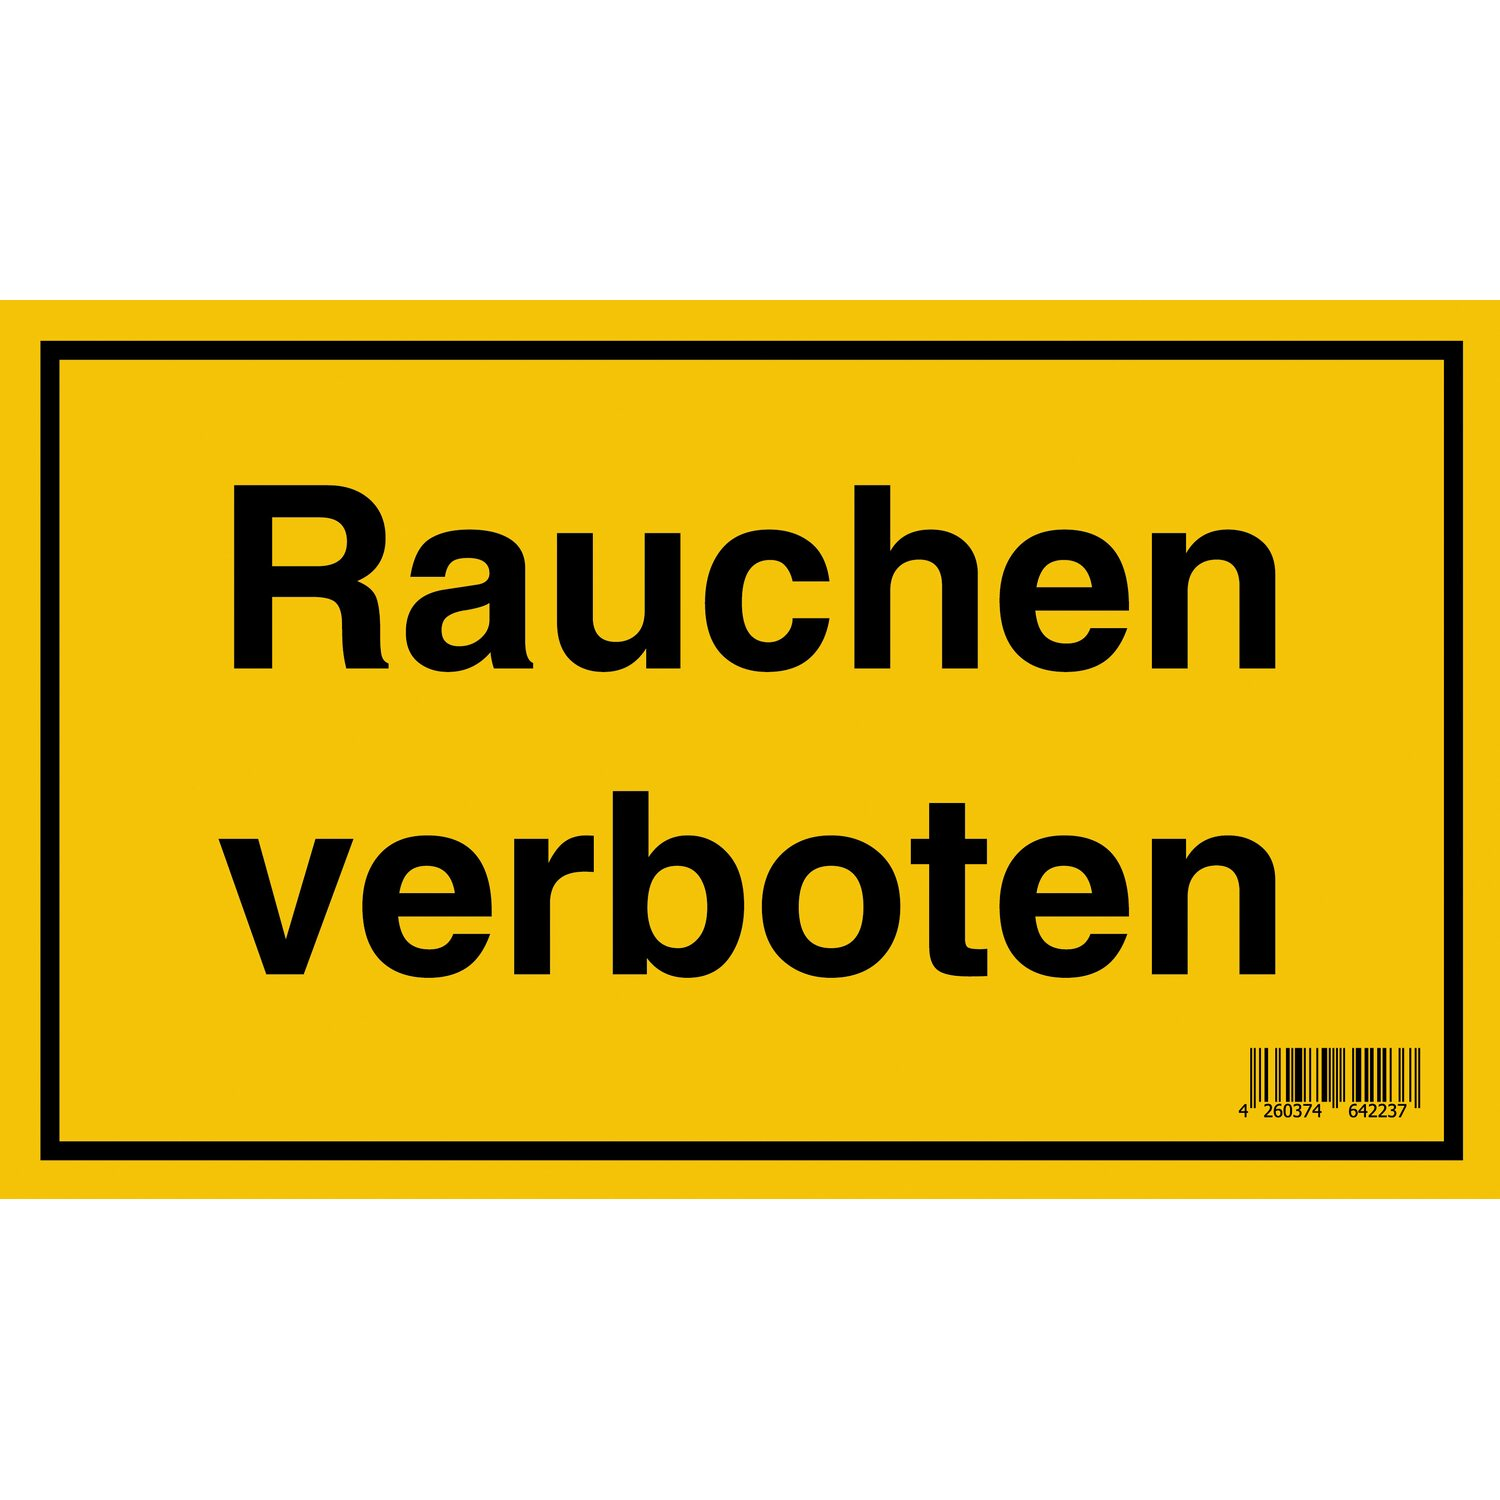 schild rauchen verboten 15 cm x 25 cm kaufen bei obi. Black Bedroom Furniture Sets. Home Design Ideas